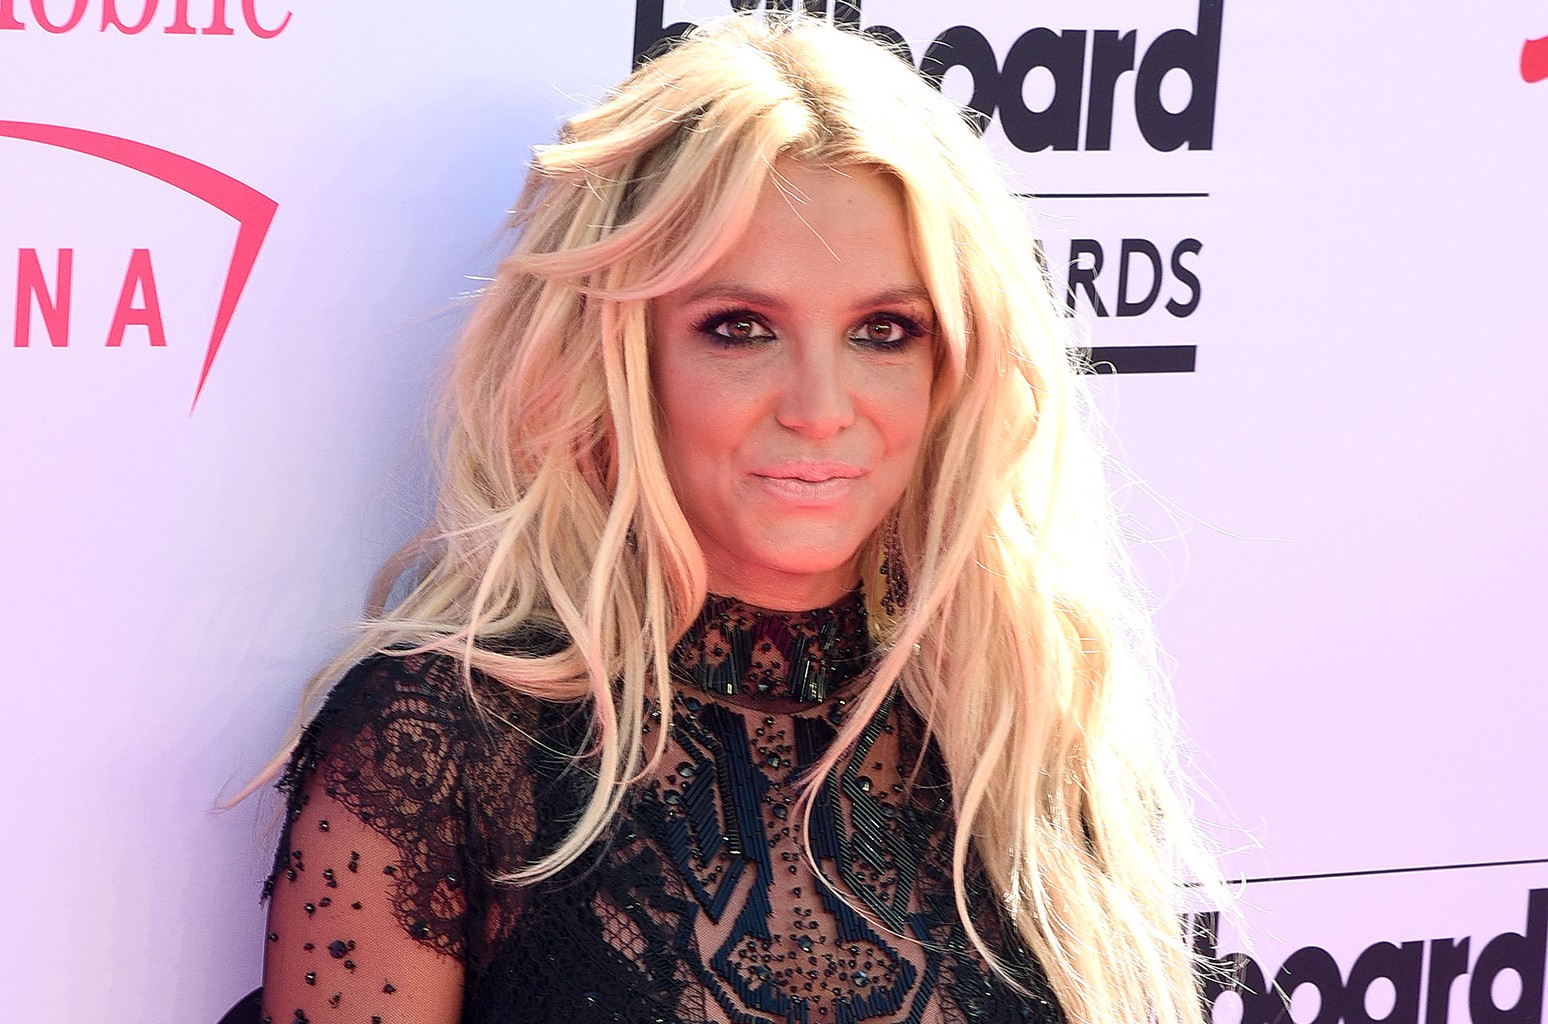 Britney Spears attends the 2016 Billboard Music Awards